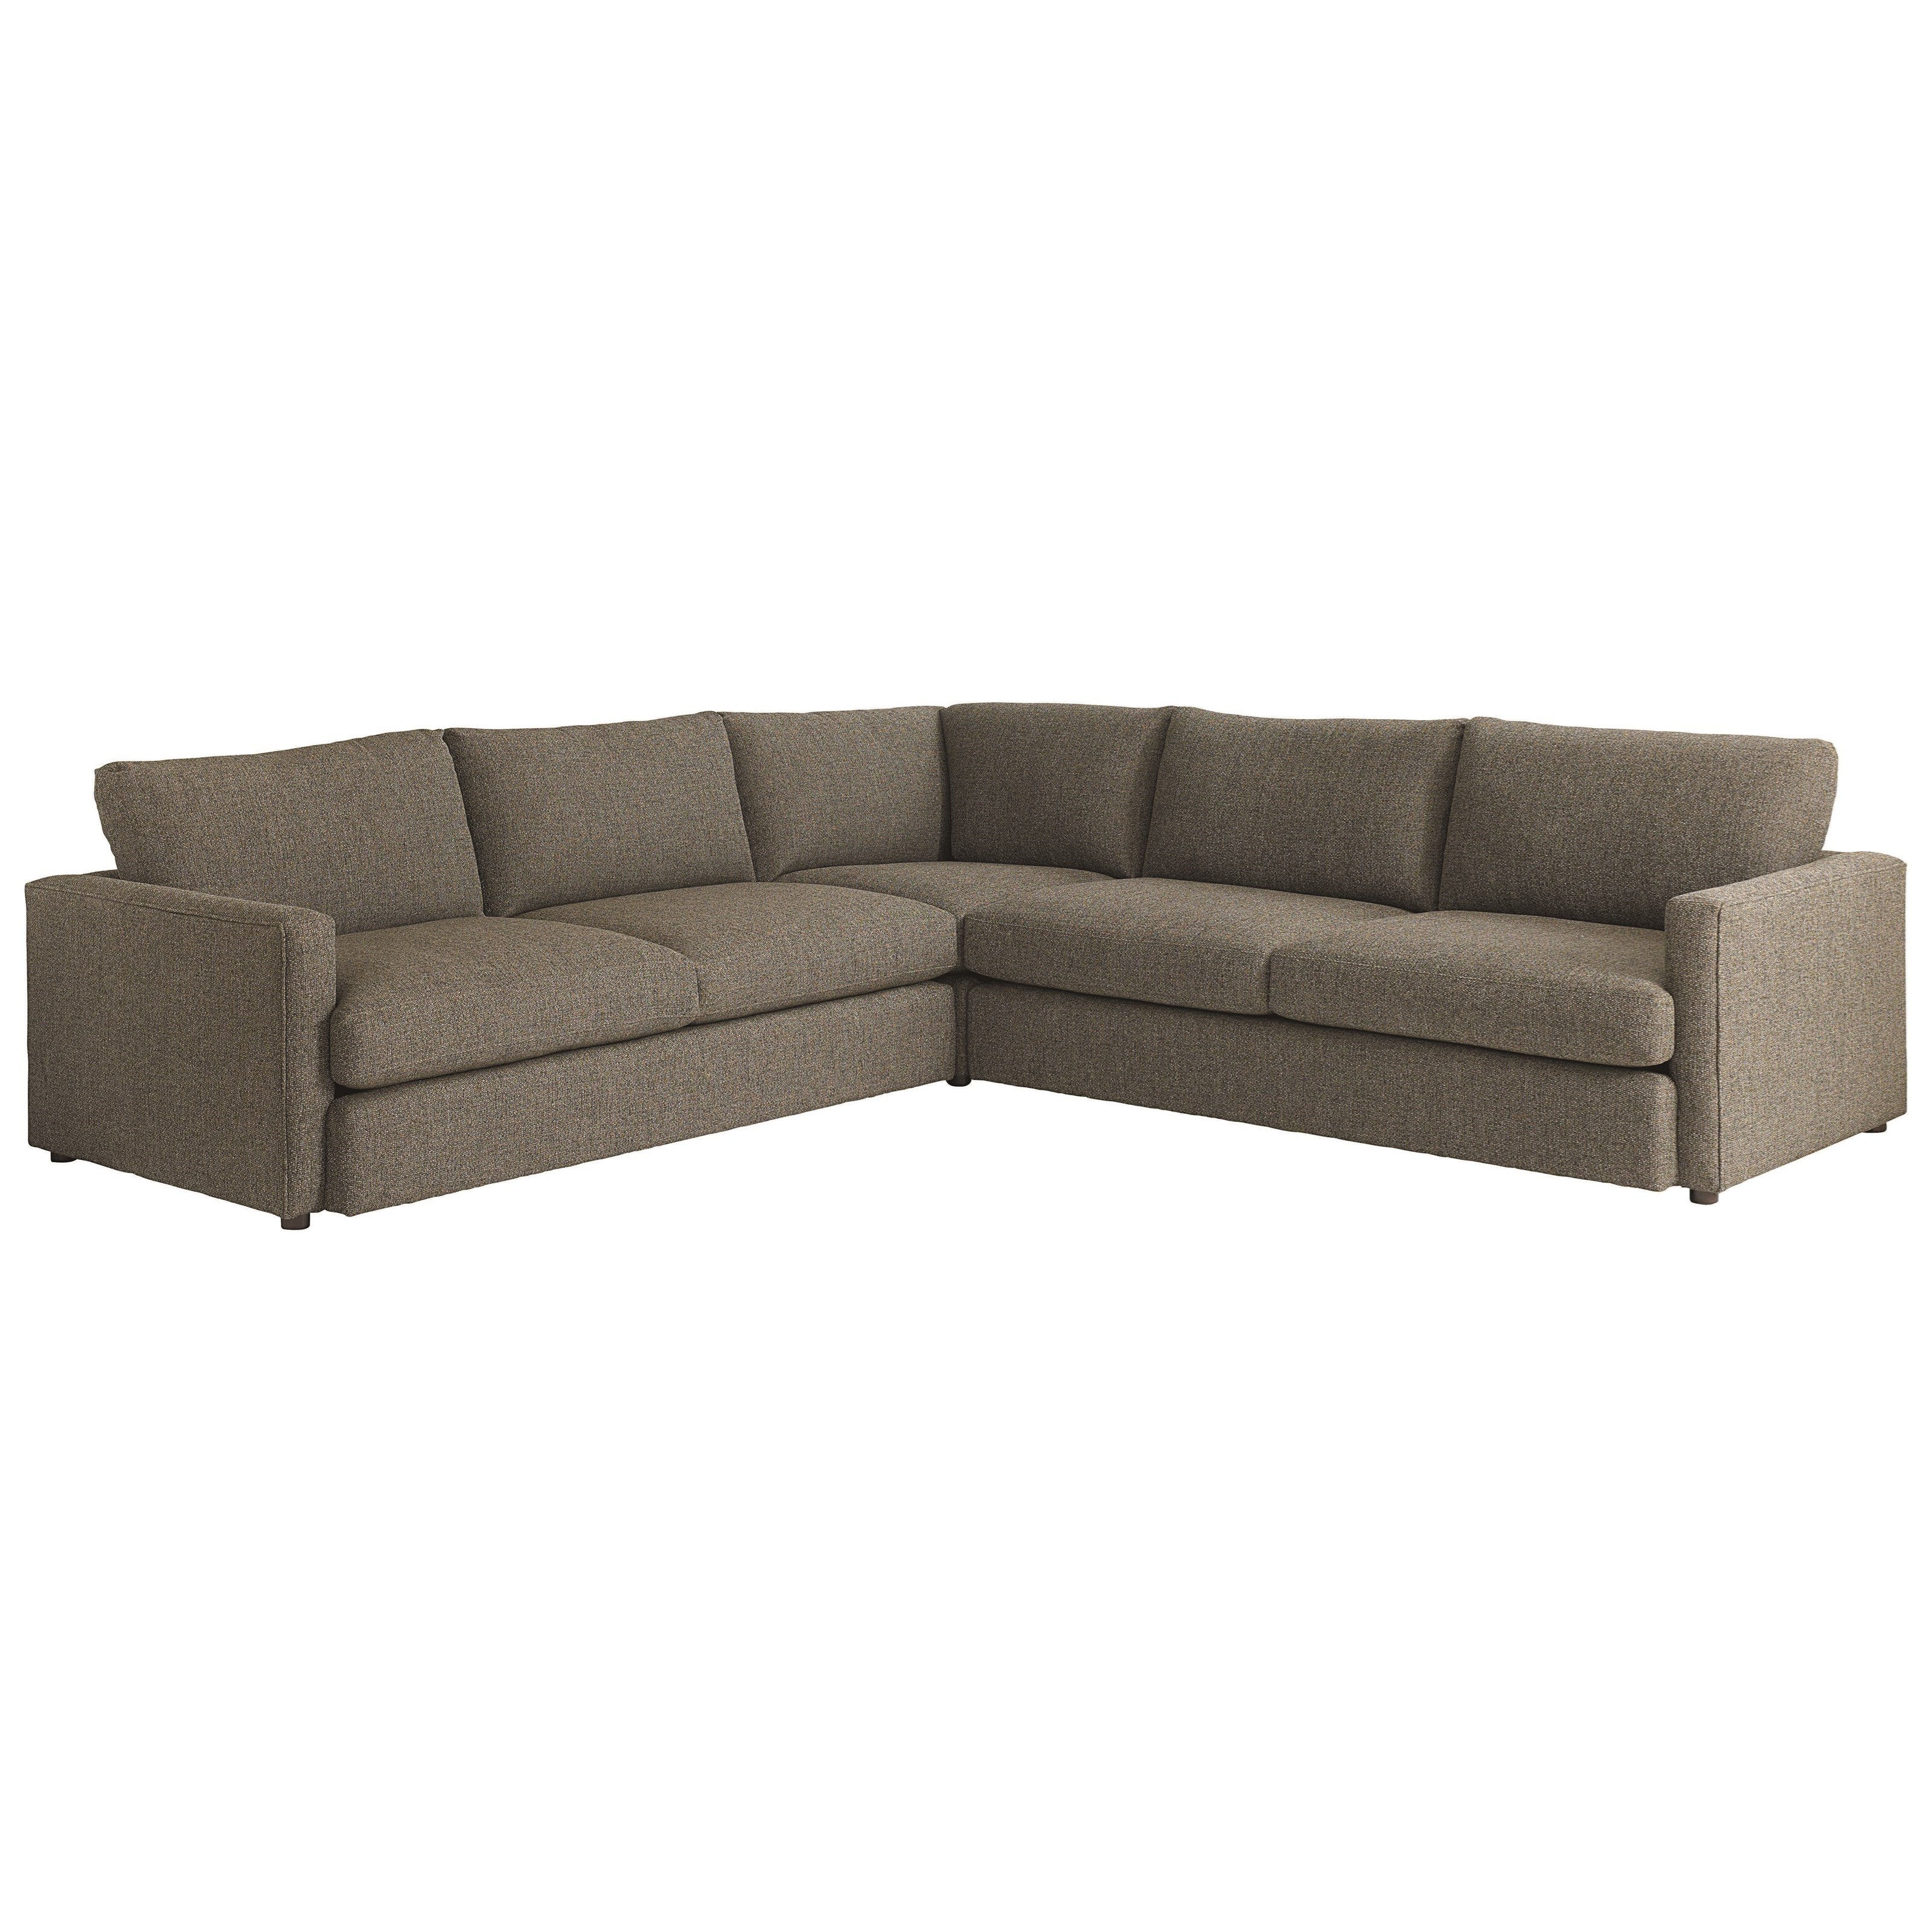 Allure Sectional with 4 Seats by Bassett at Williams & Kay